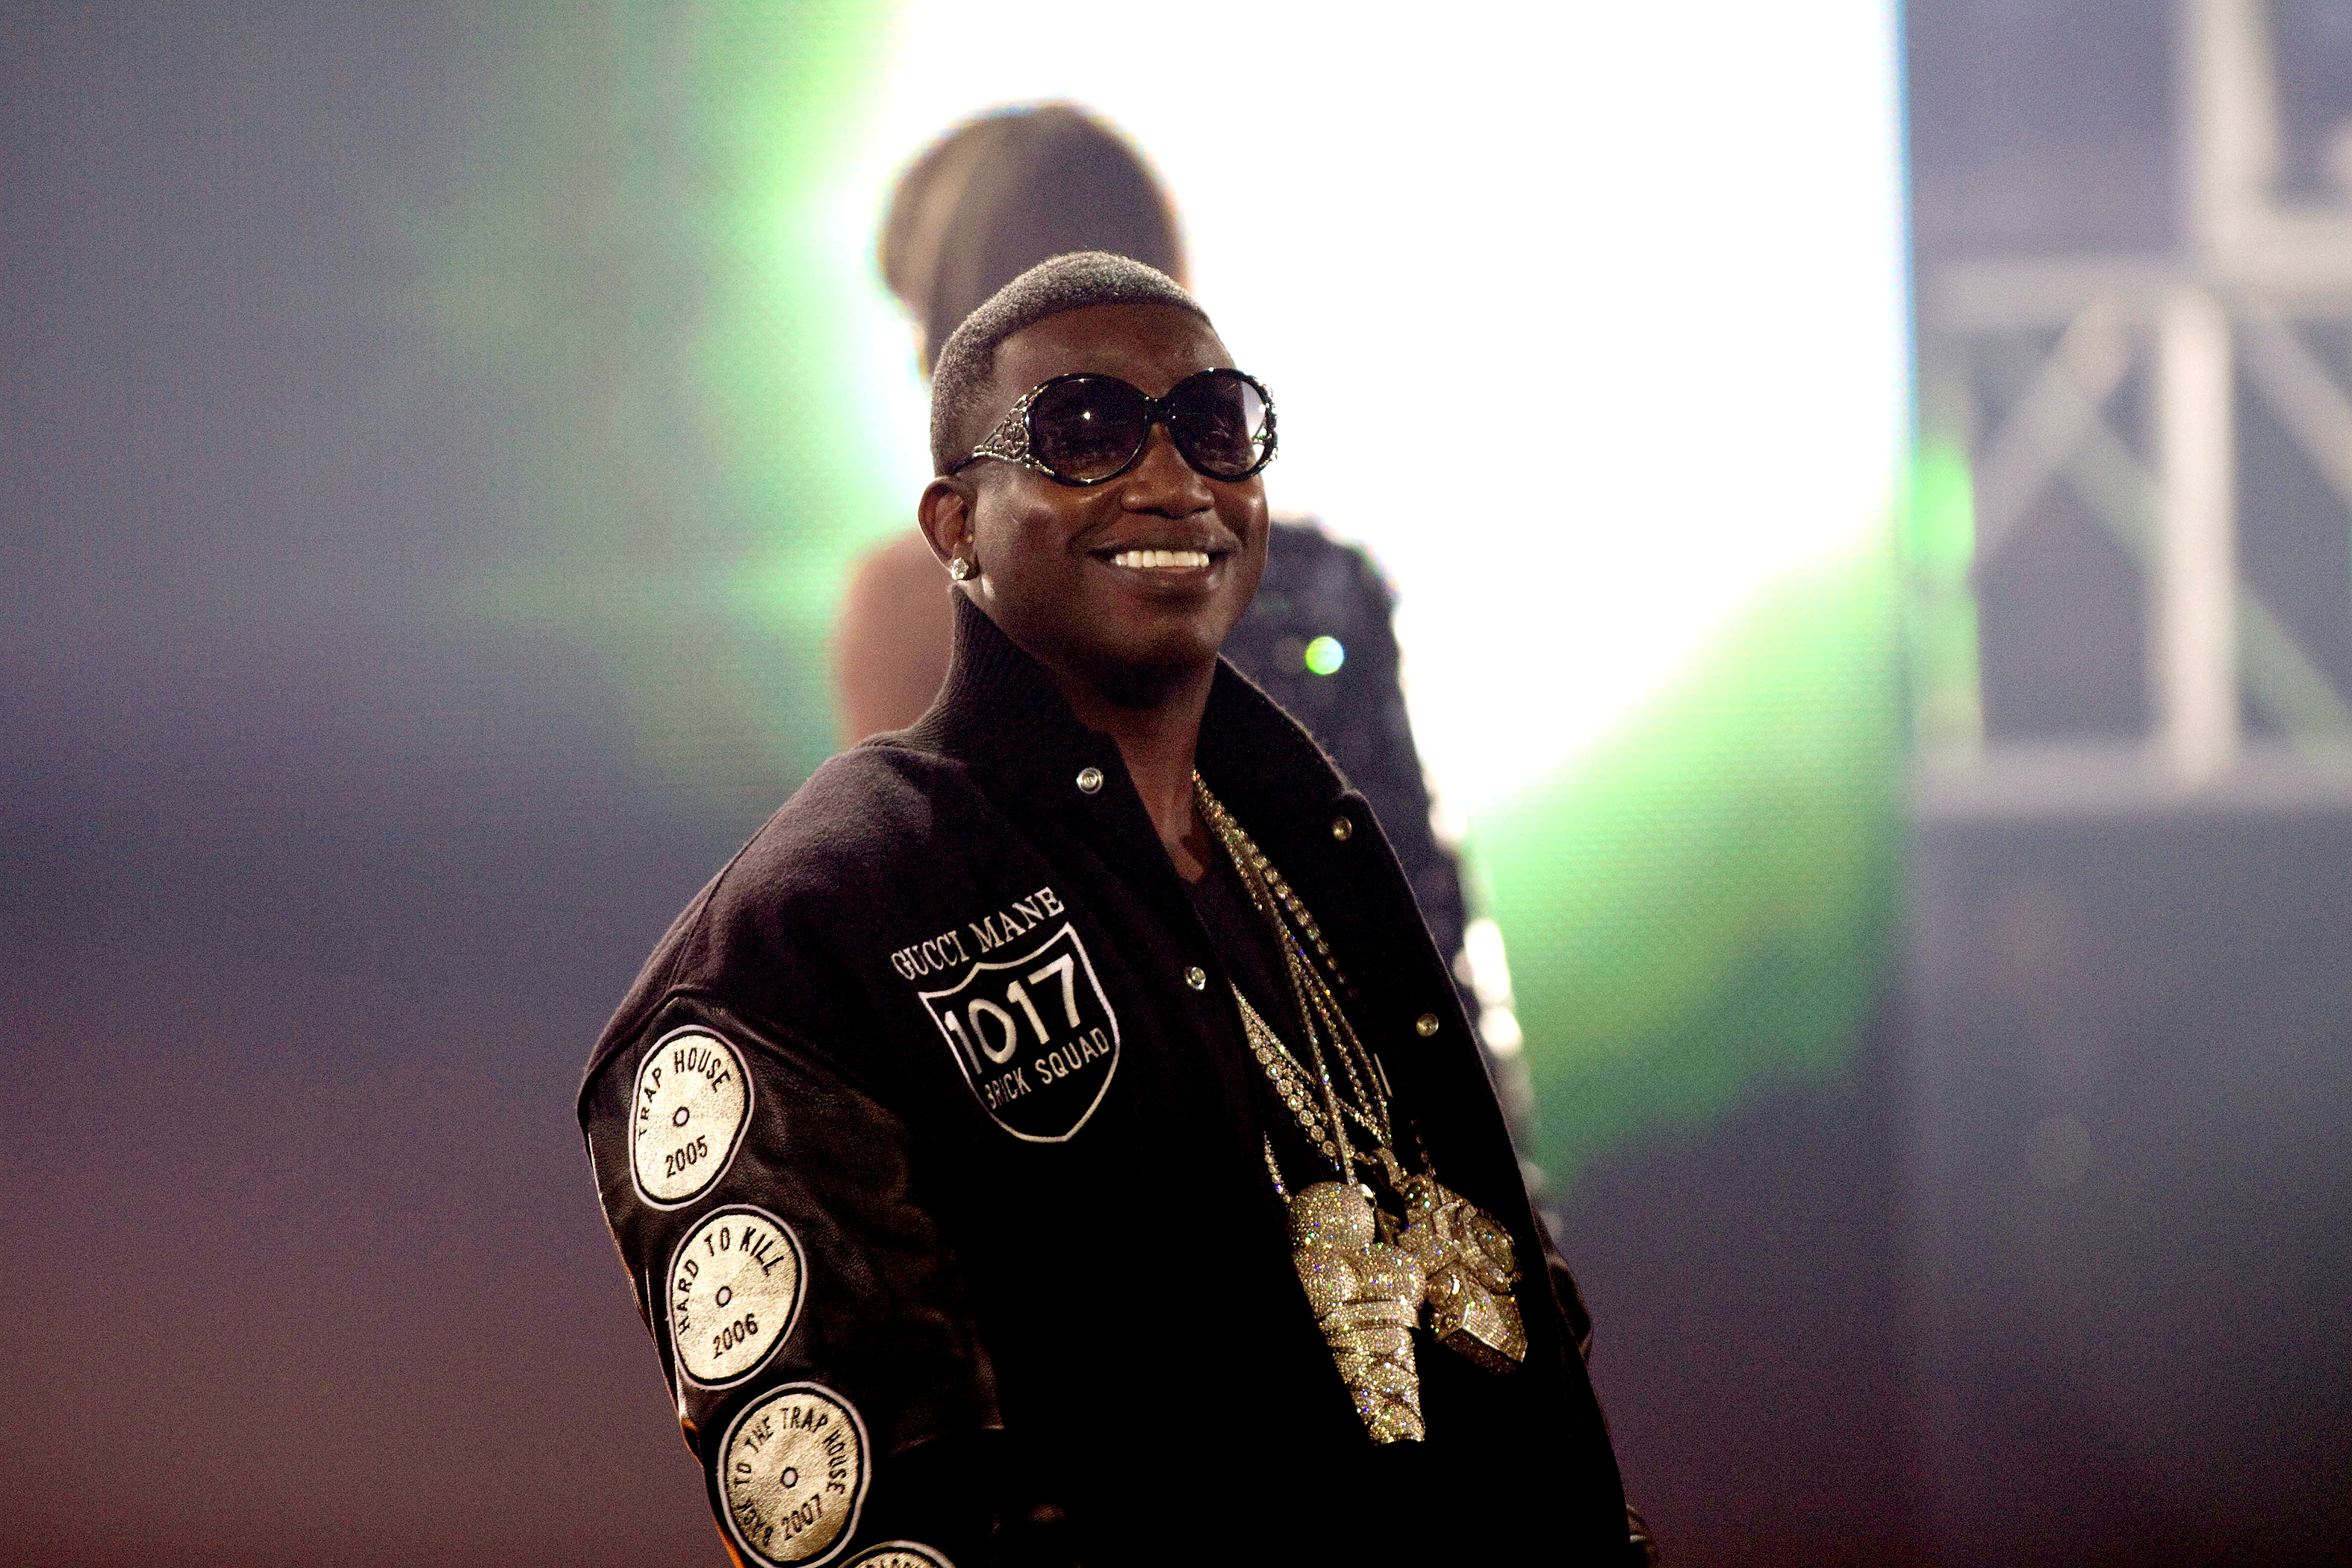 Gucci Mane Drops New 'On Me' Song Ft. Tupac [Listen] 010516 Video BET Breaks Gucci Mane Gucci Mane Performs Hip Hop Awards